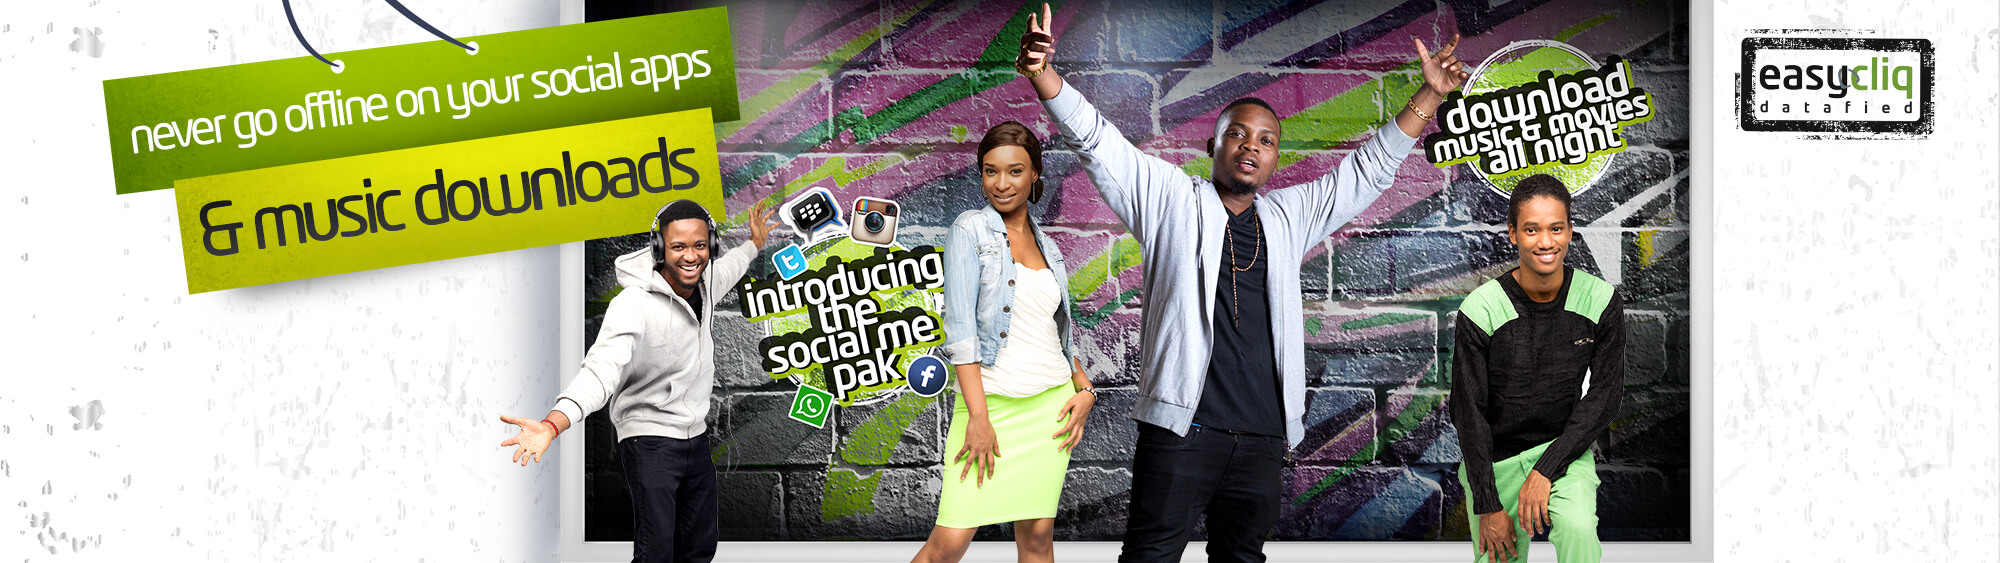 Etisalat SocialME PACK Unlimited Access to Social Apps